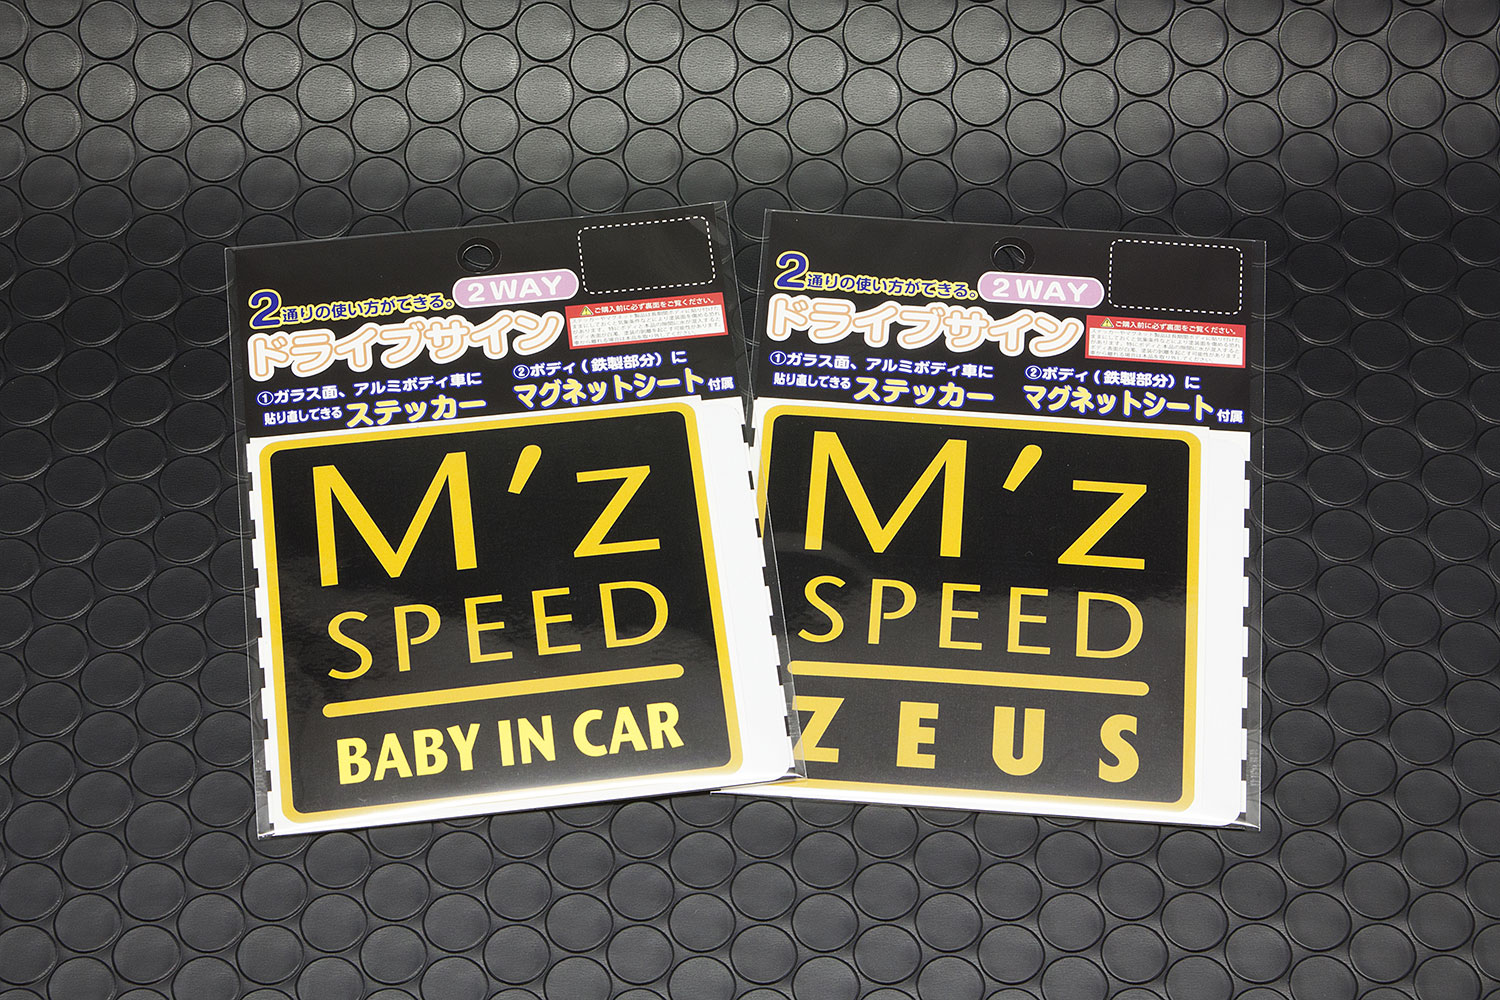 M'z Drive sign